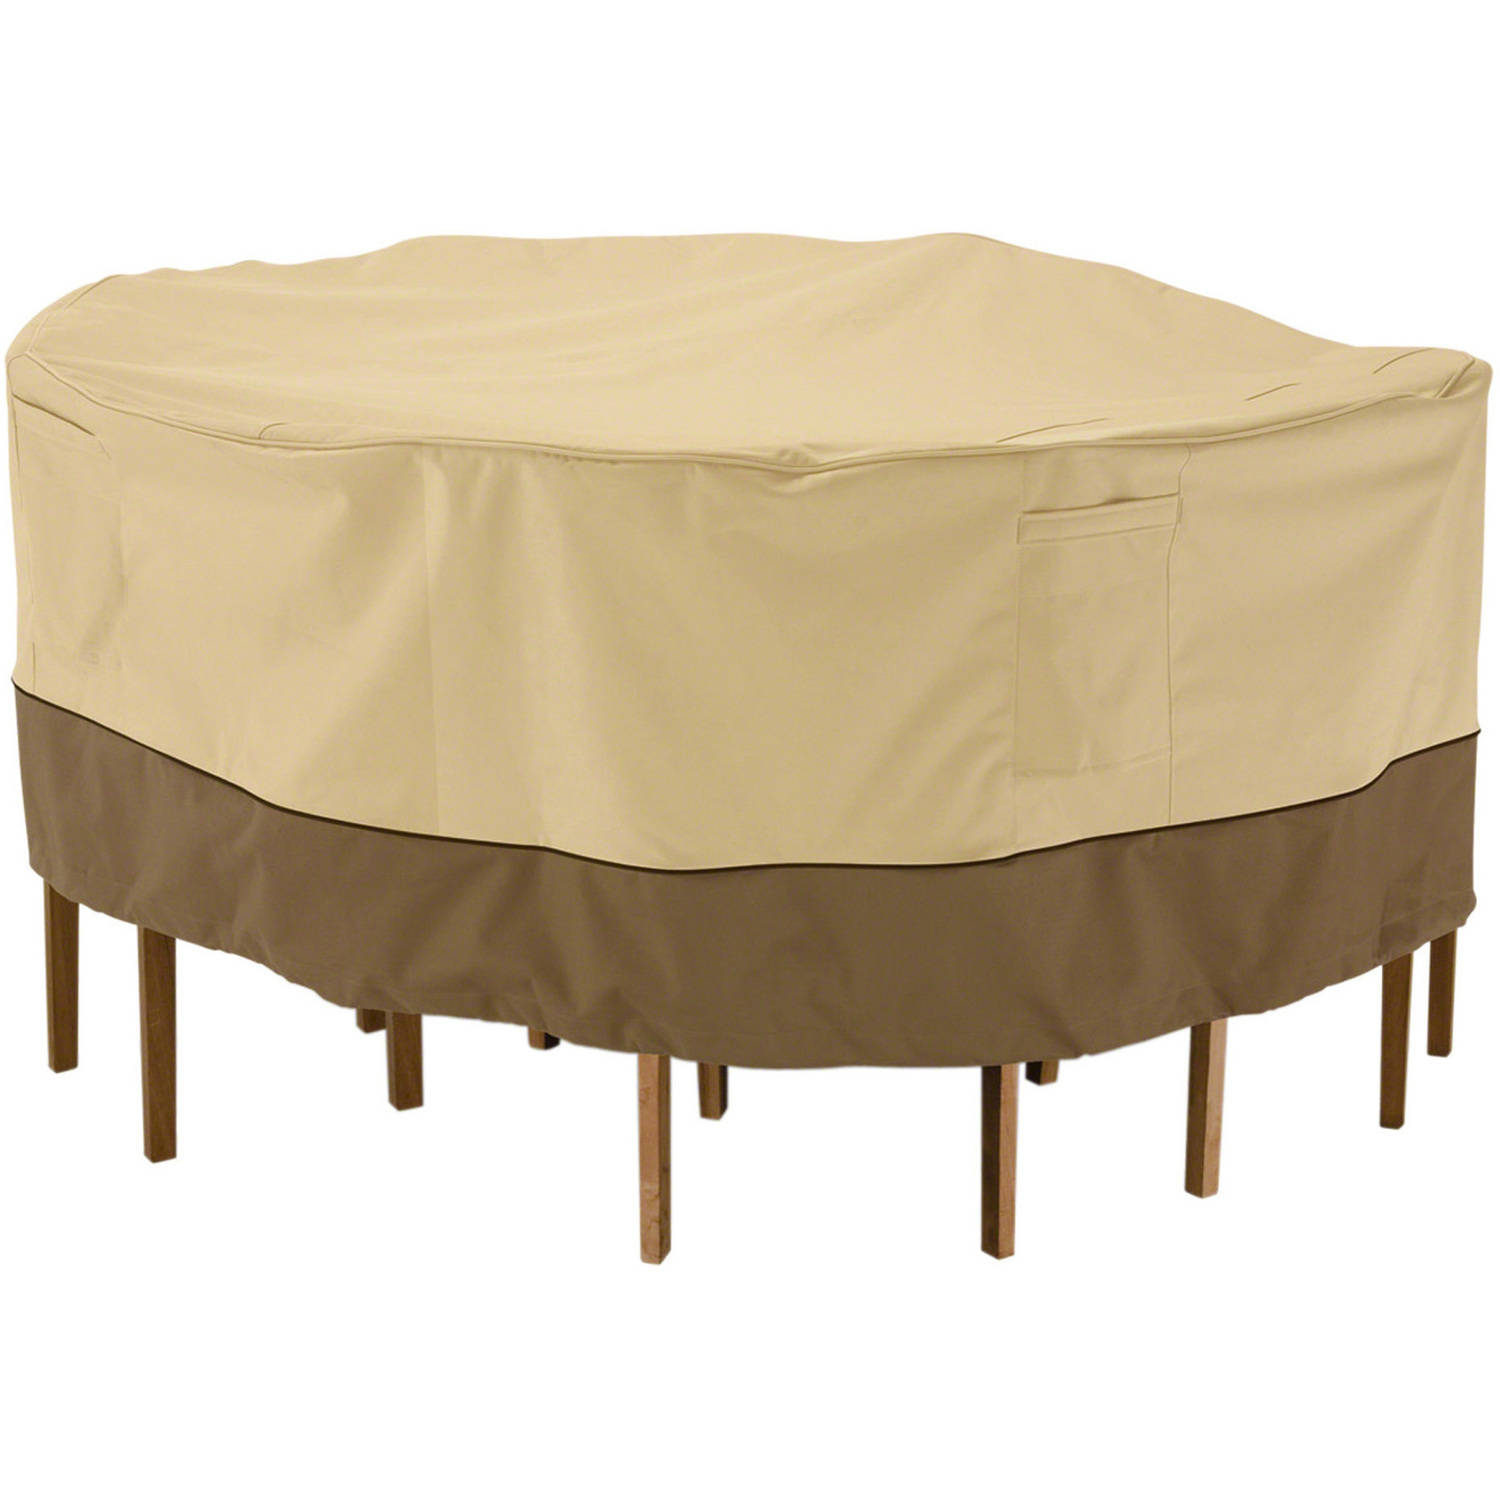 outdoor patio furniture covers. classic accessories veranda round patio table u0026 chair set cover durable and water resistant outdoor furniture covers